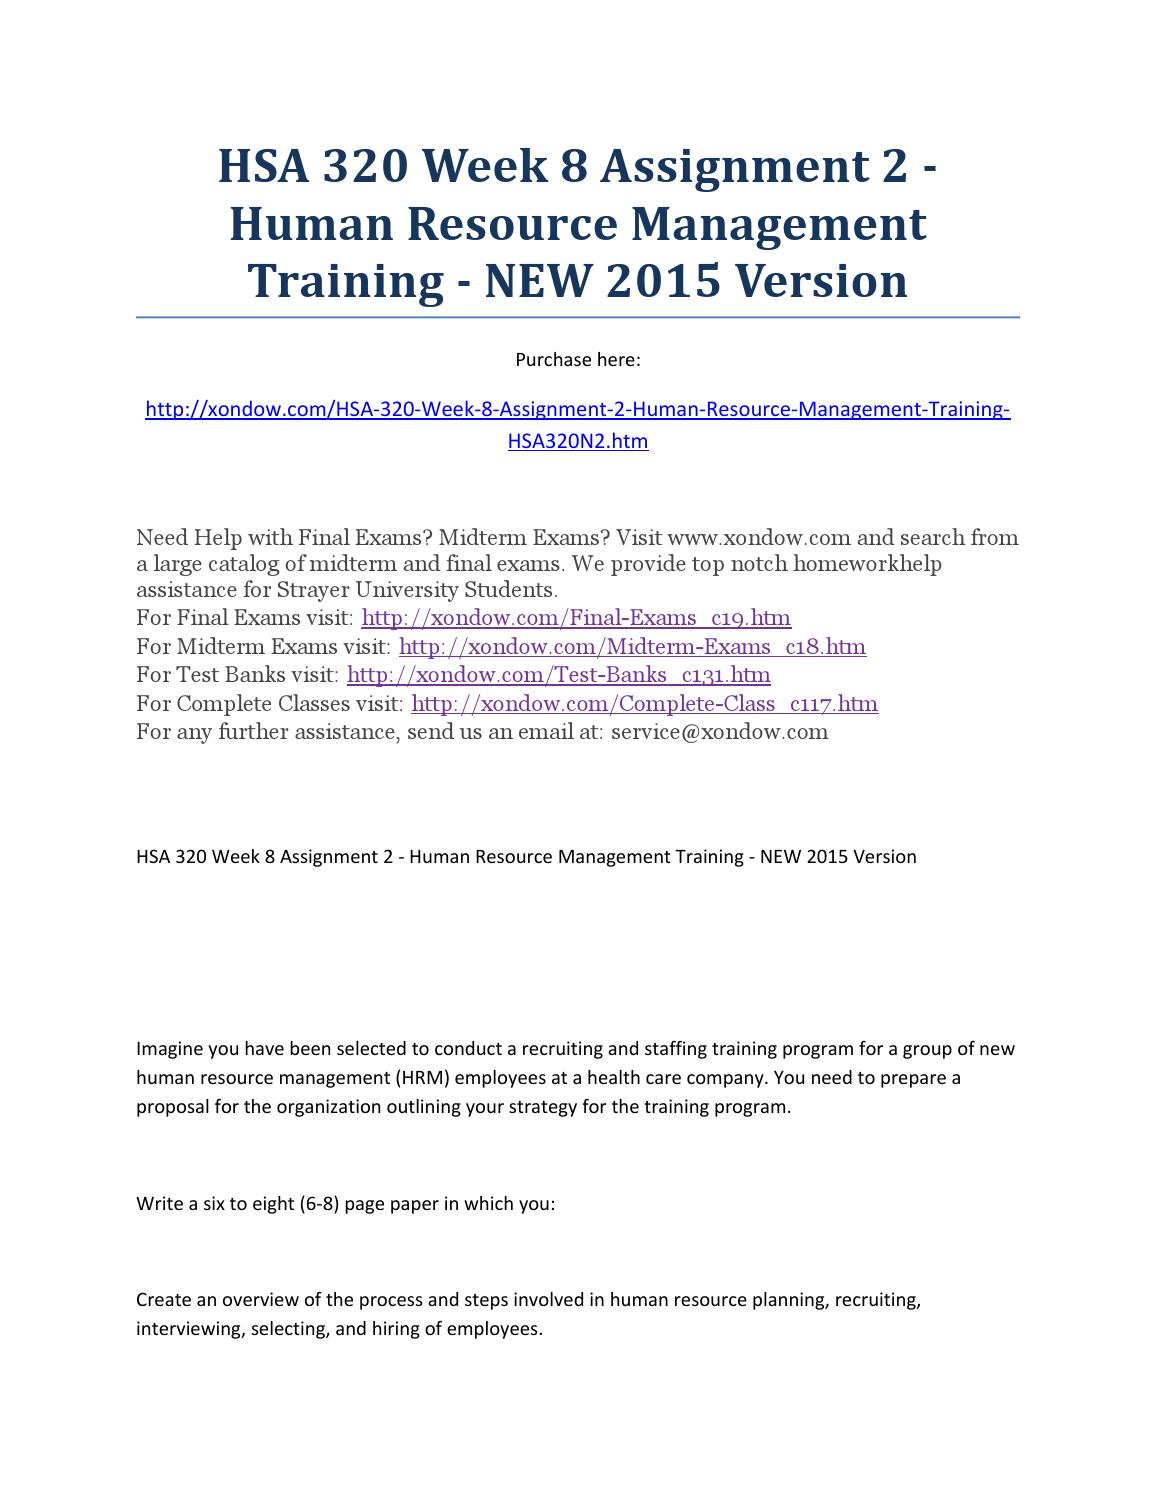 hsa 320 week 8 assignment 2 human resource management training new hsa 320 week 8 assignment 2 human resource management training new 2015 version by xondow